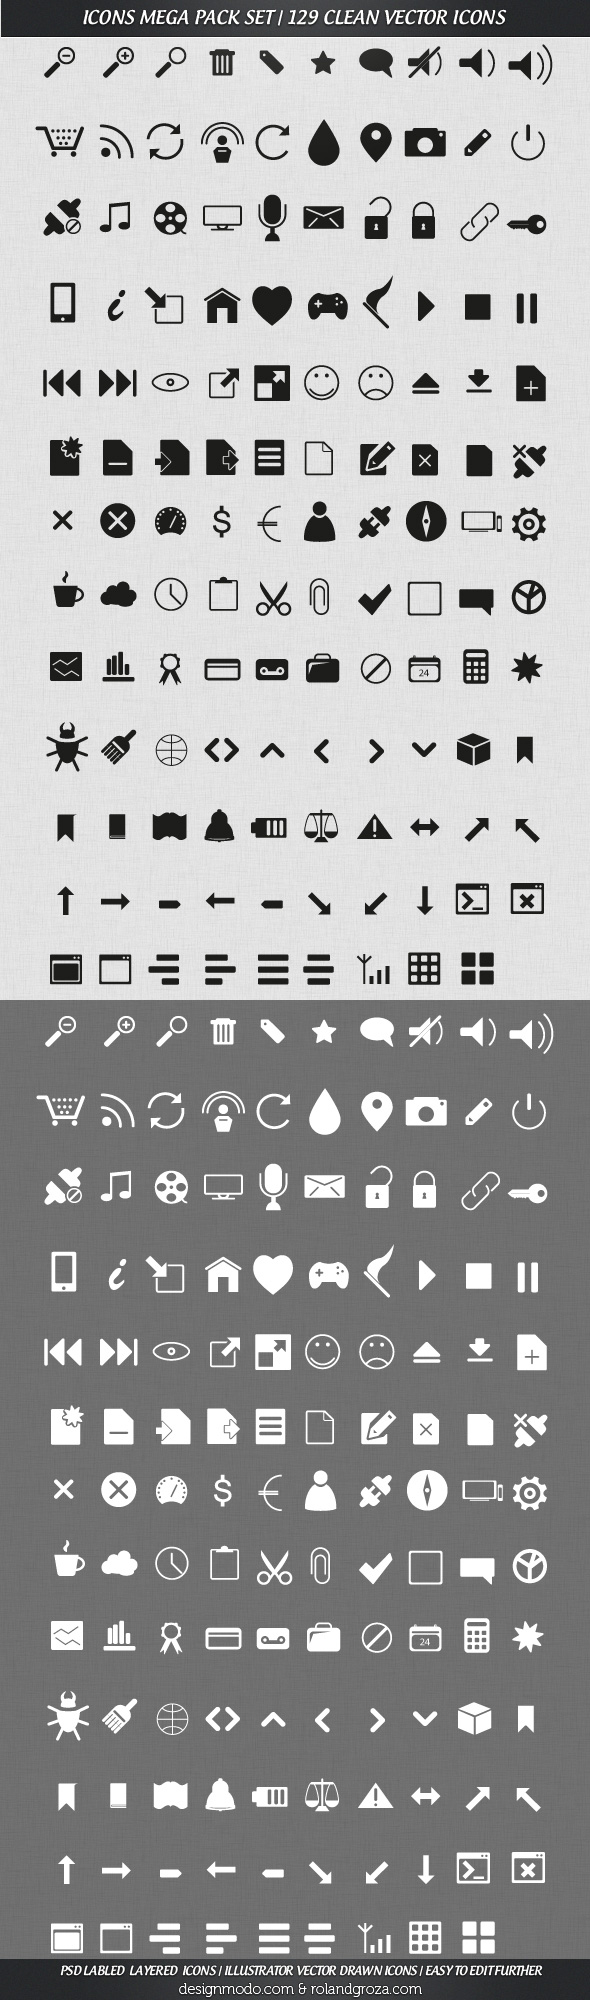 Mega Pack Vector Icons Set